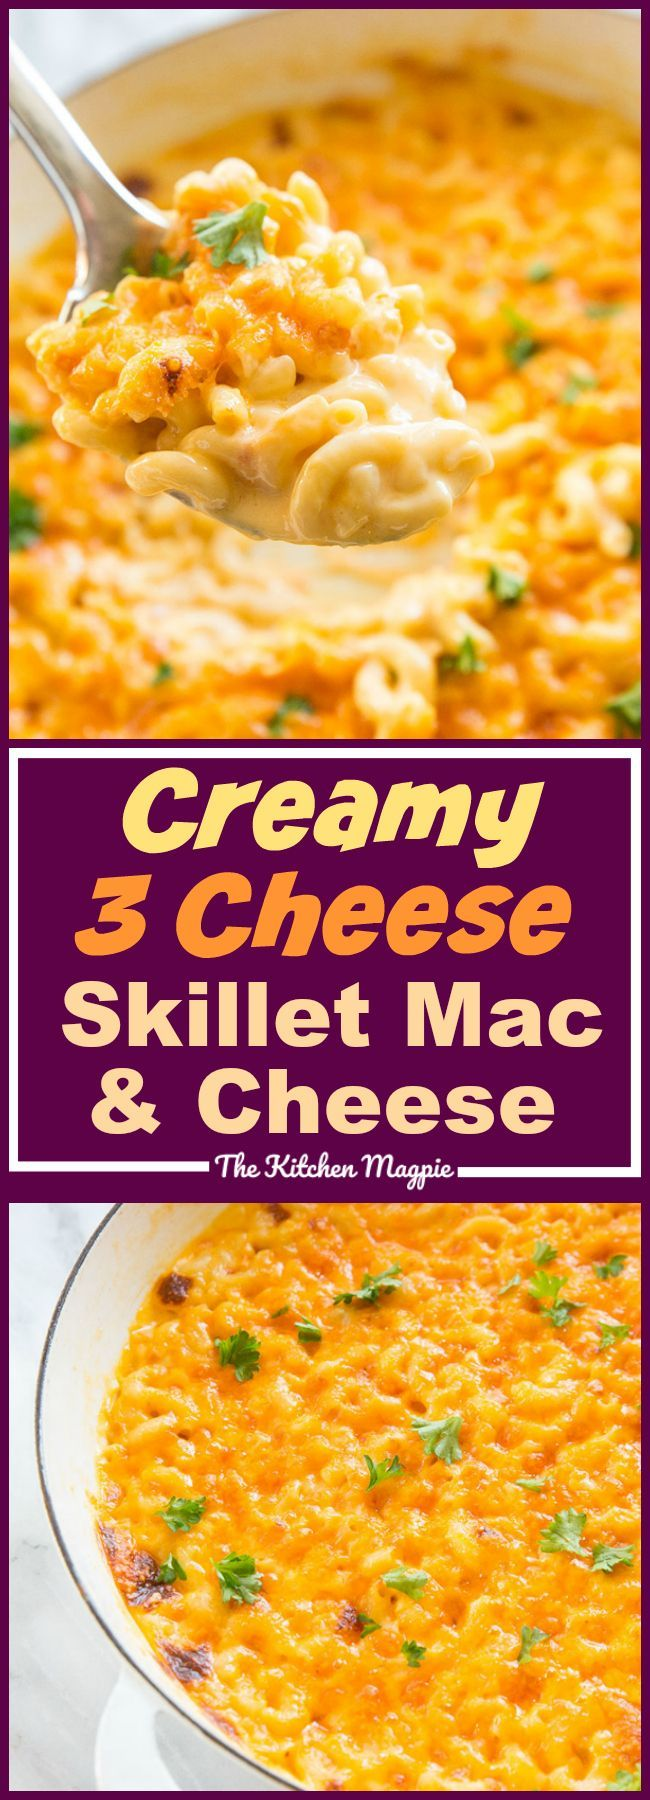 This Creamy Three Cheese Skillet Mac and Cheese is the most decadent mac and cheese I have ever eaten! #recipe #cheese #macandcheese #familyfood